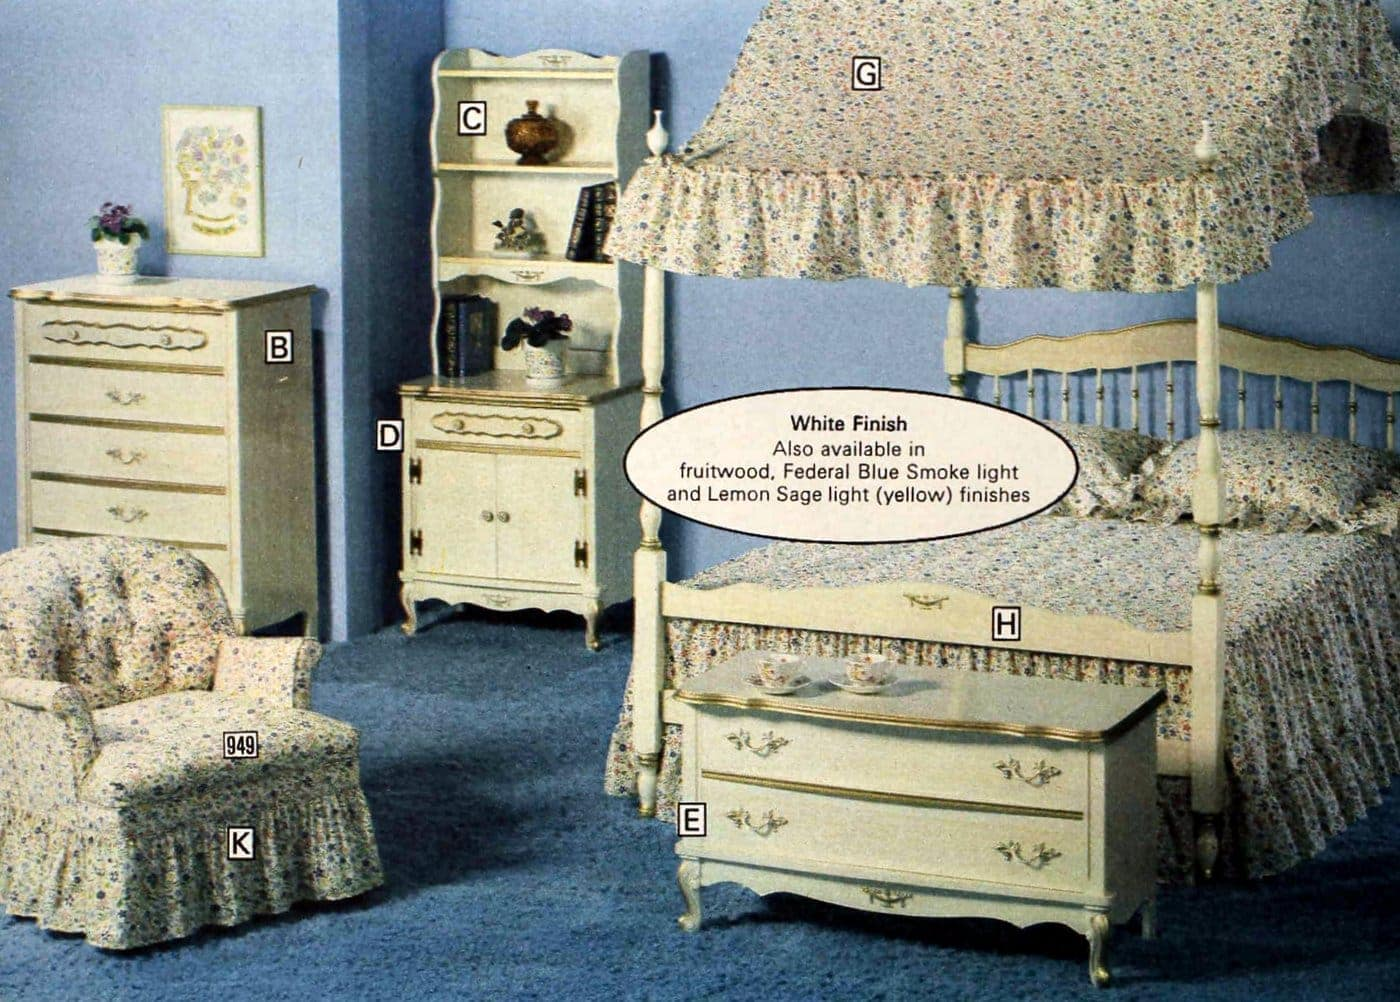 Vintage Sears canopy beds from 1977 (5)